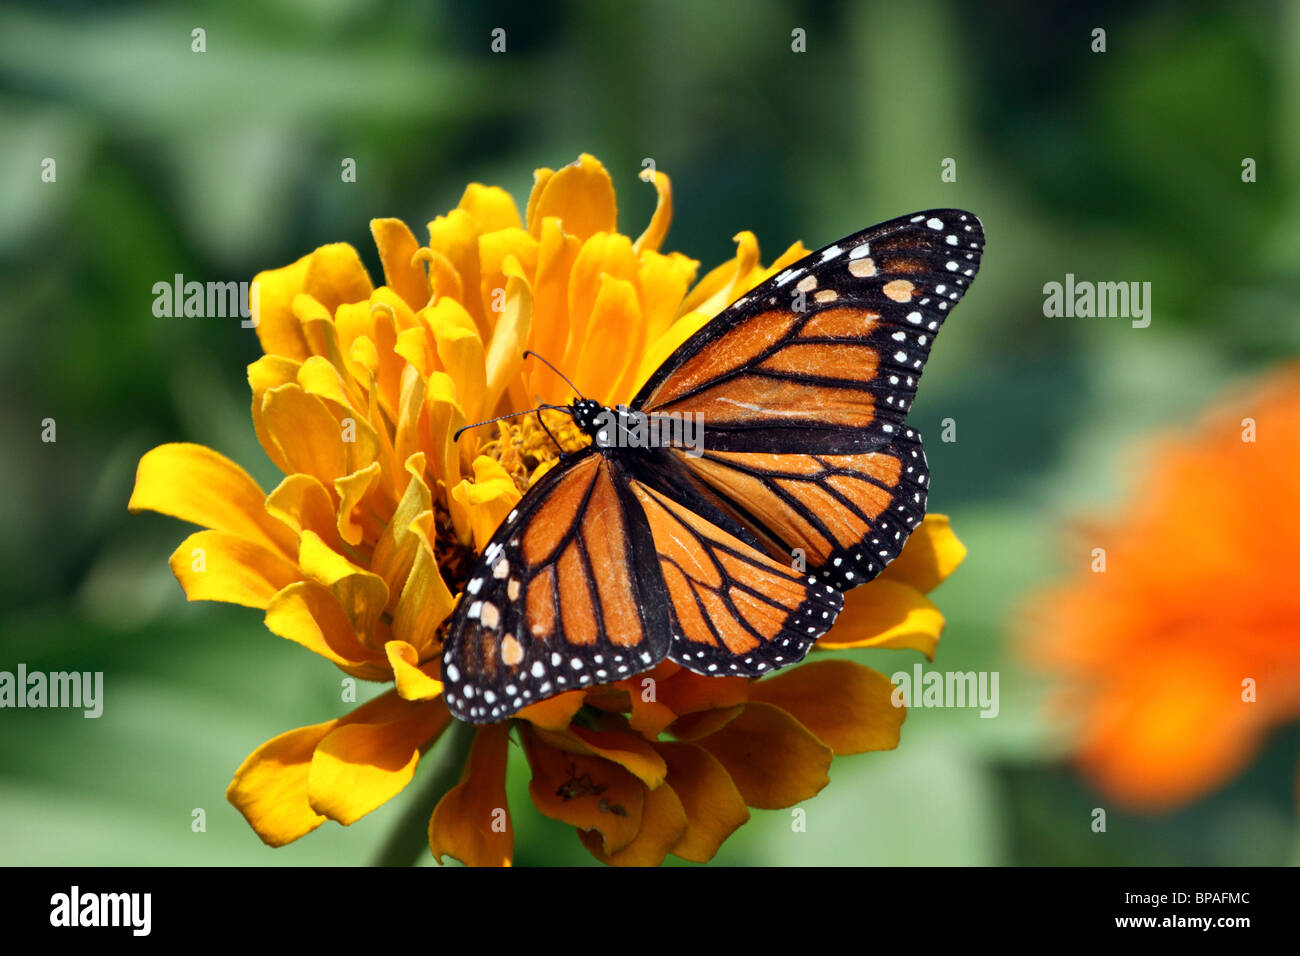 Monarch Butterfly, Danaus plexippus, with wings spread feeding at a yellow flower. - Stock Image